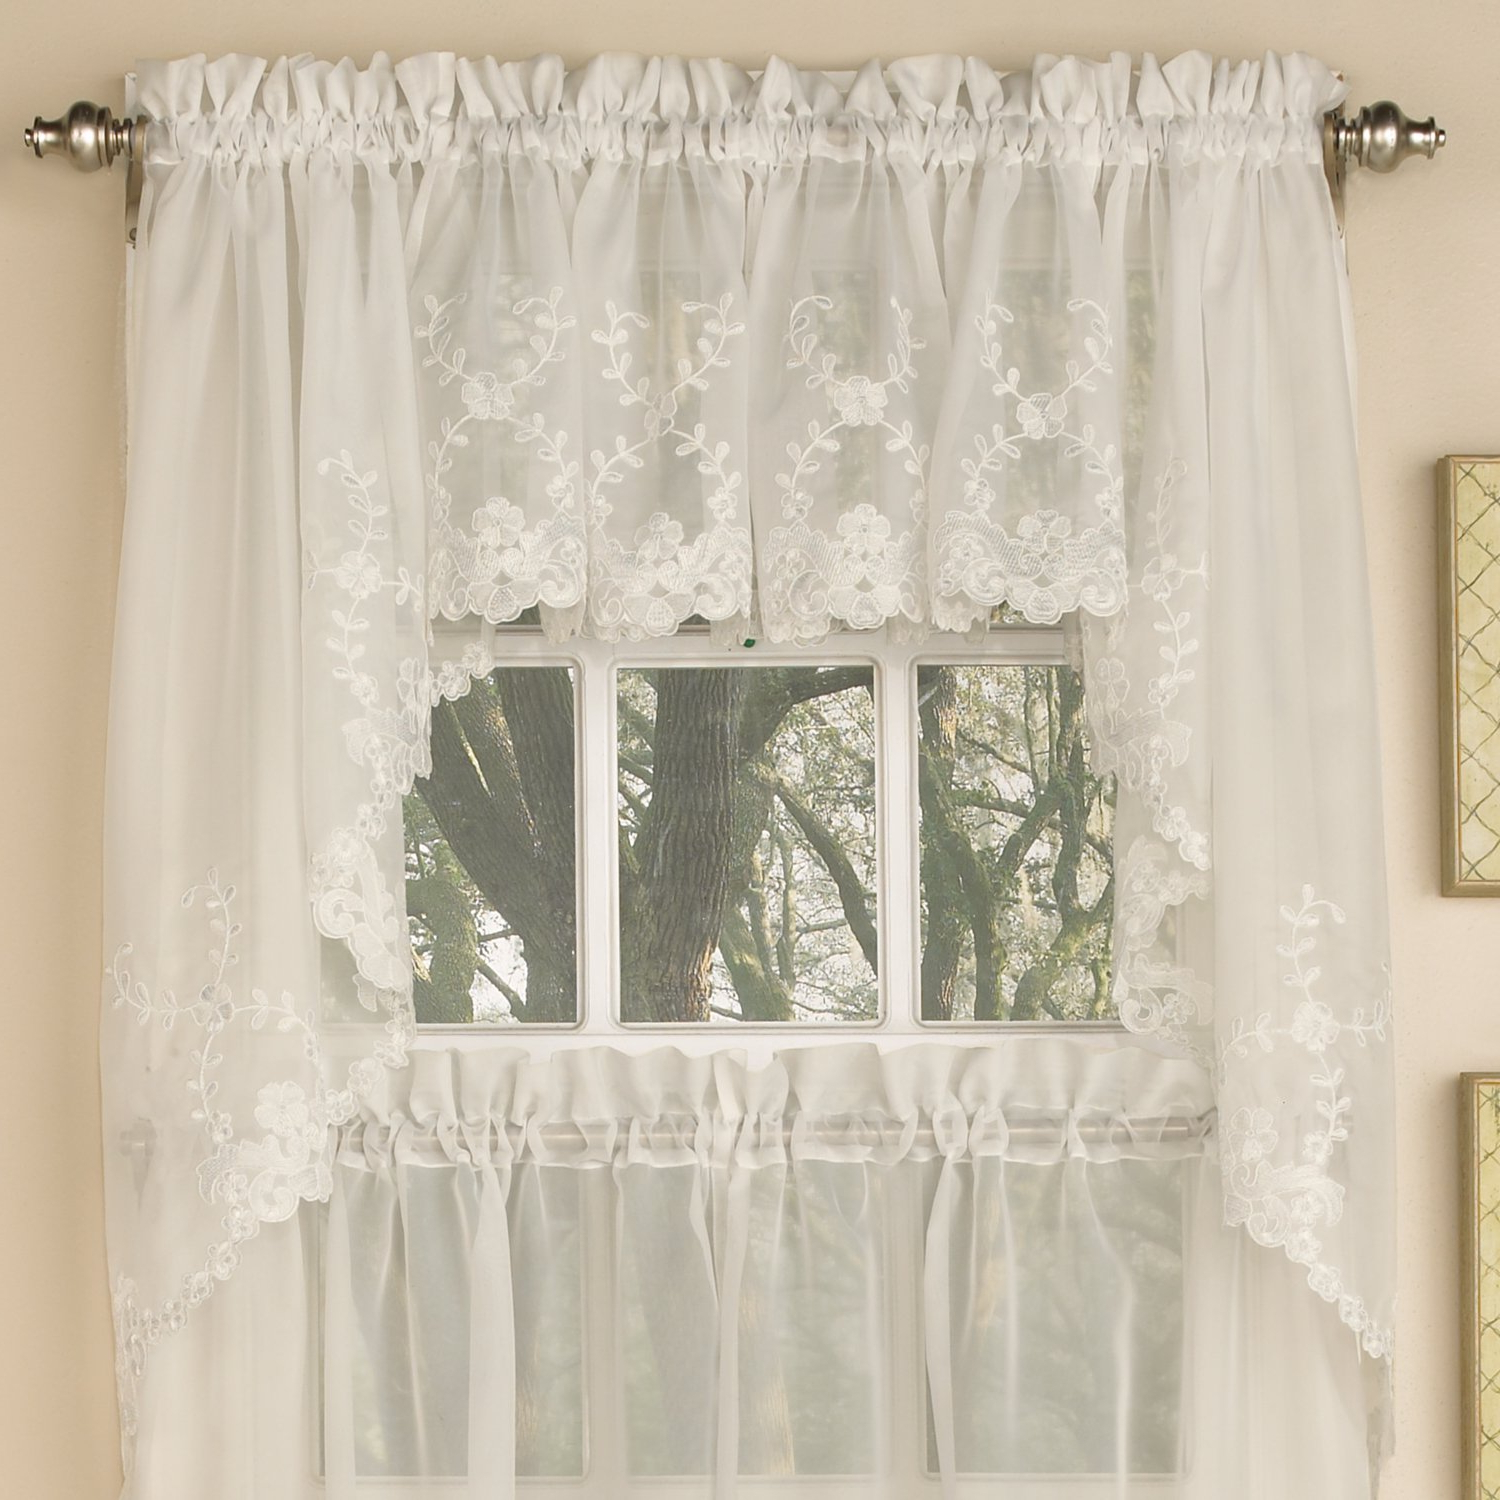 Trendy Sweet Home Collection Kitchen Window Tier, Swag, Or Valance Curtain Treatment In Stylish And Unique Patterns And Designs For All Home Décor, With Regard To Abby Embroidered 5 Piece Curtain Tier And Swag Sets (View 13 of 20)